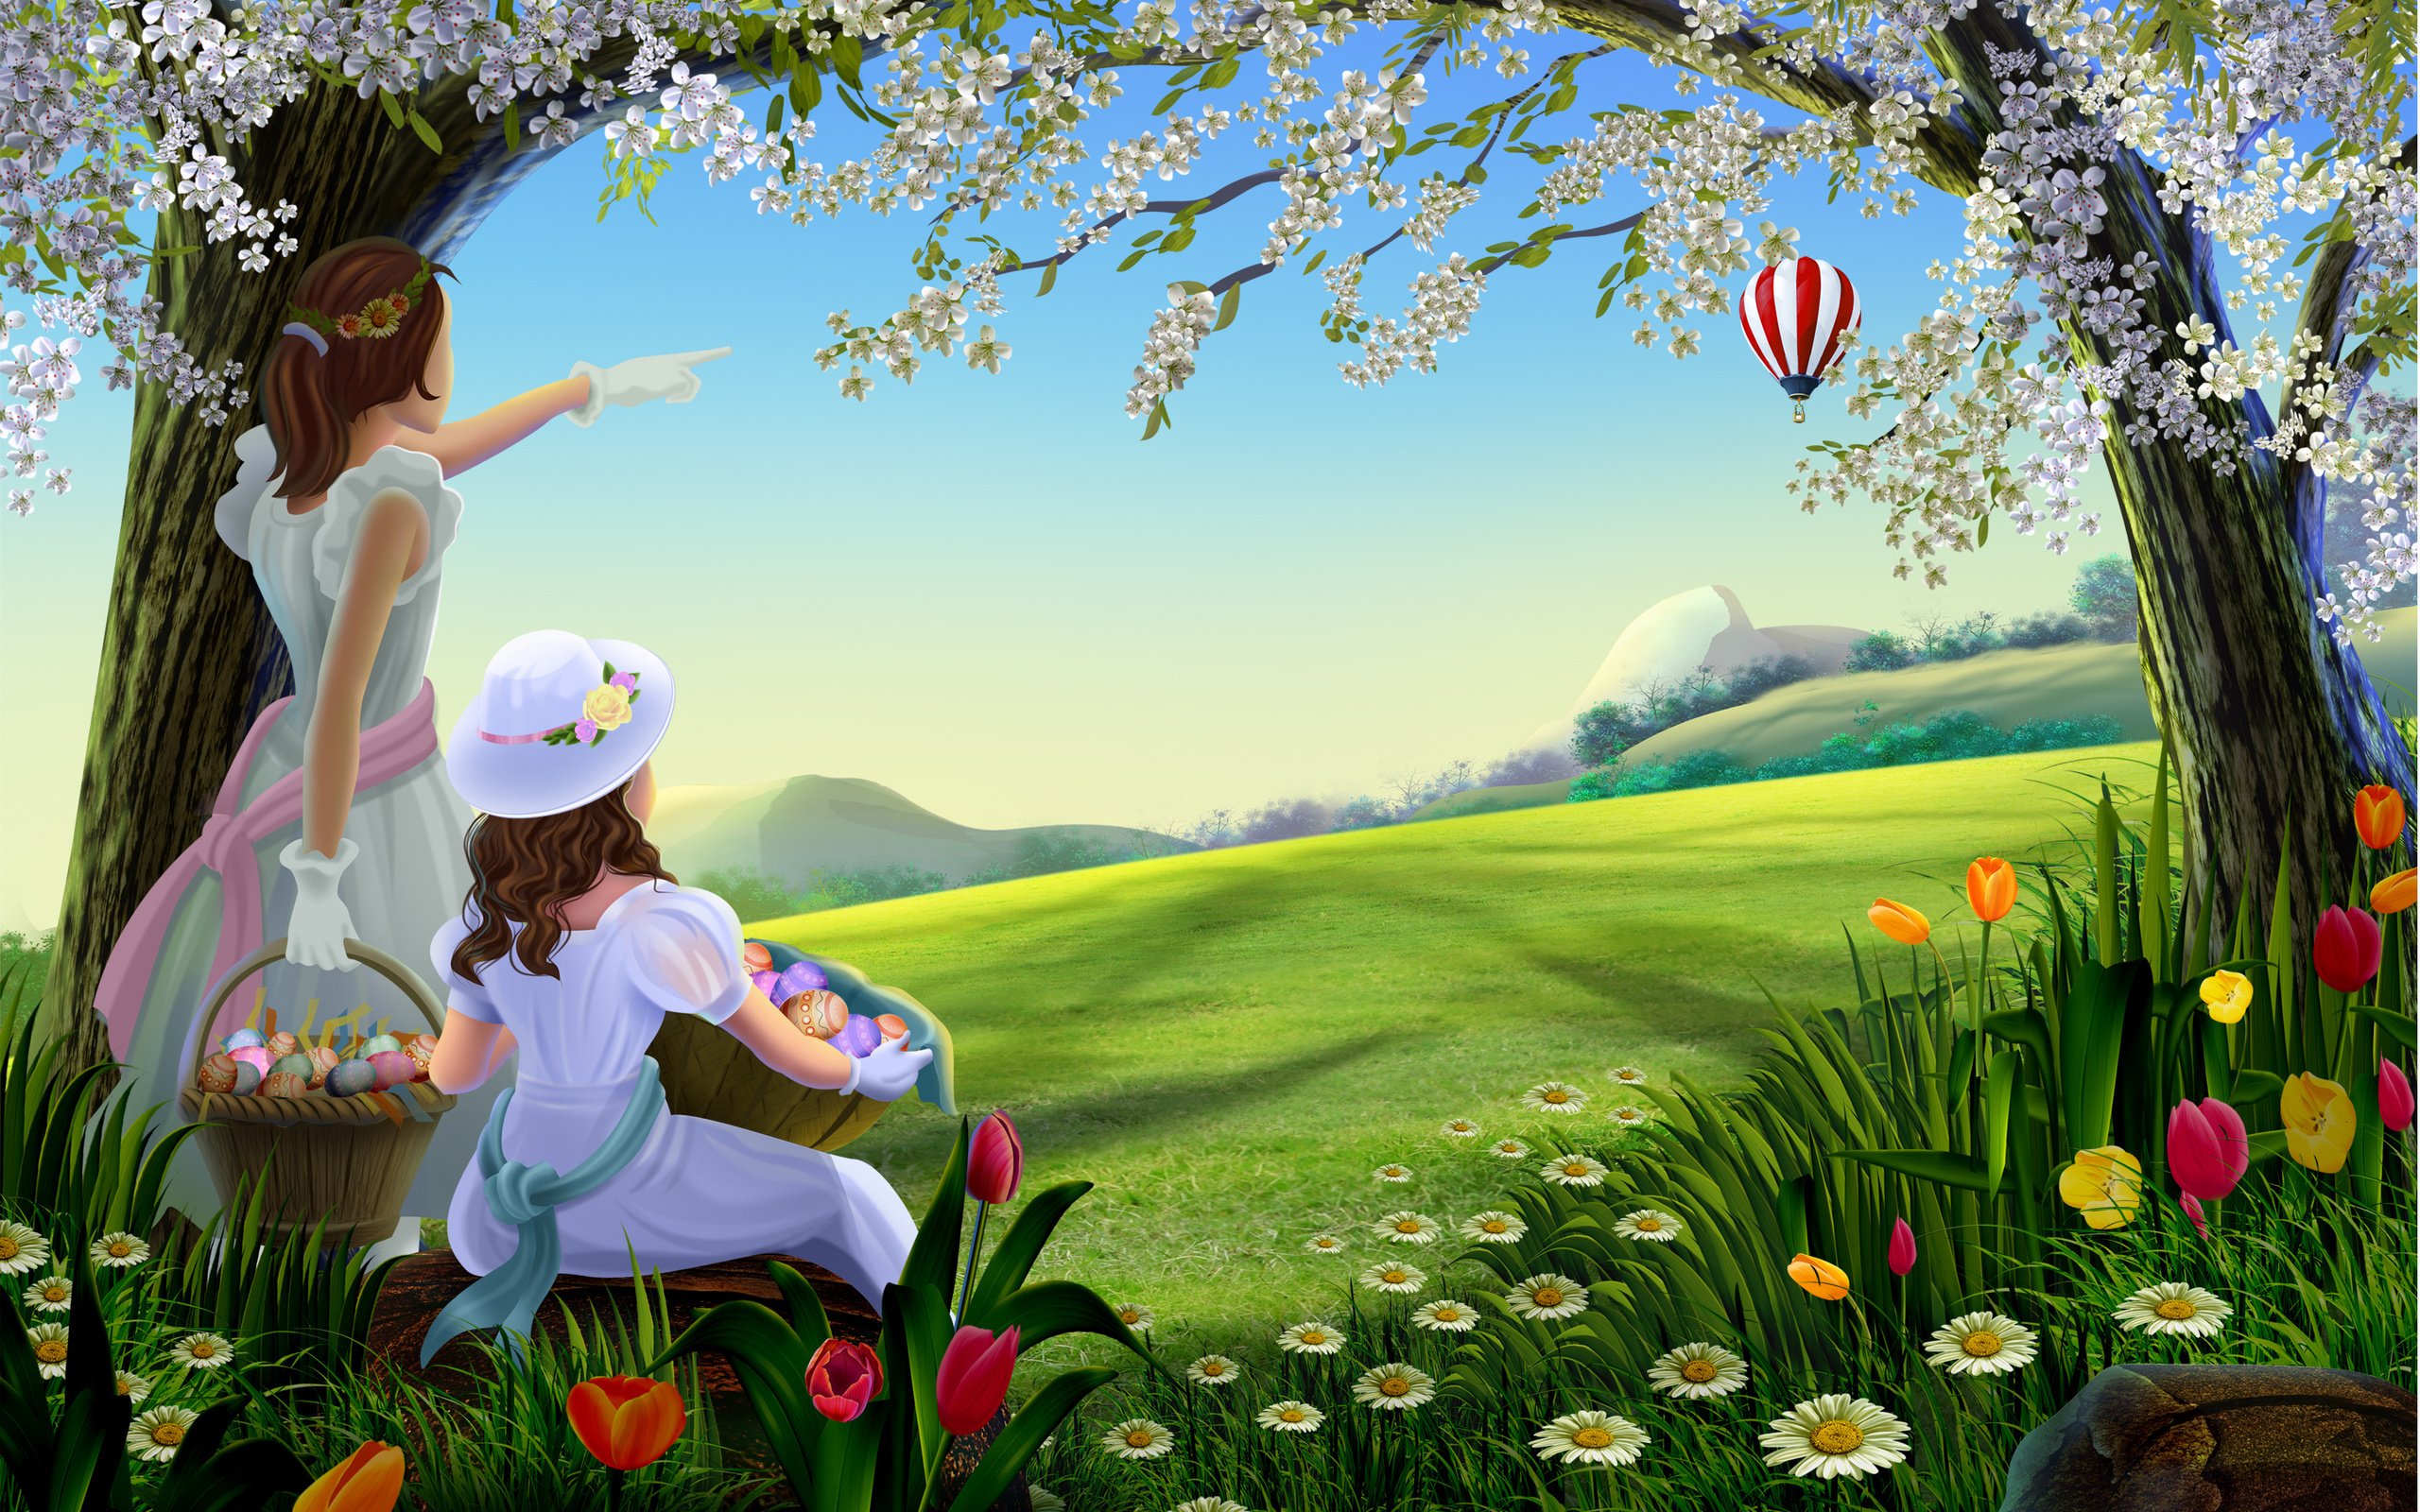 Easter Desktop Background   Wallpaper High Definition High Quality 2560x1600